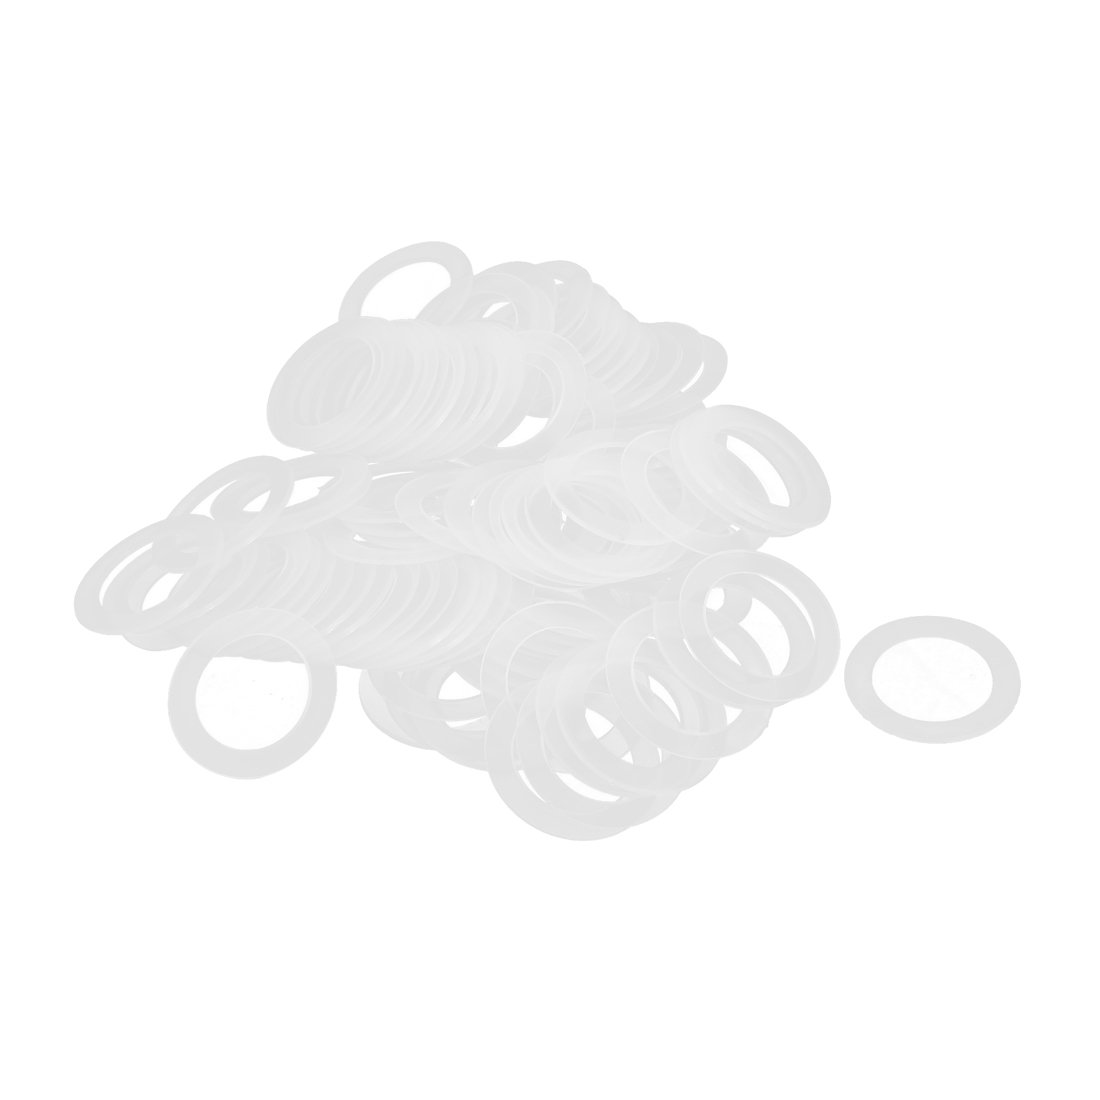 30mm x 20mm x 1mm Nylon Flat Insulating Washers Spacer Gasket Clear 100pcs